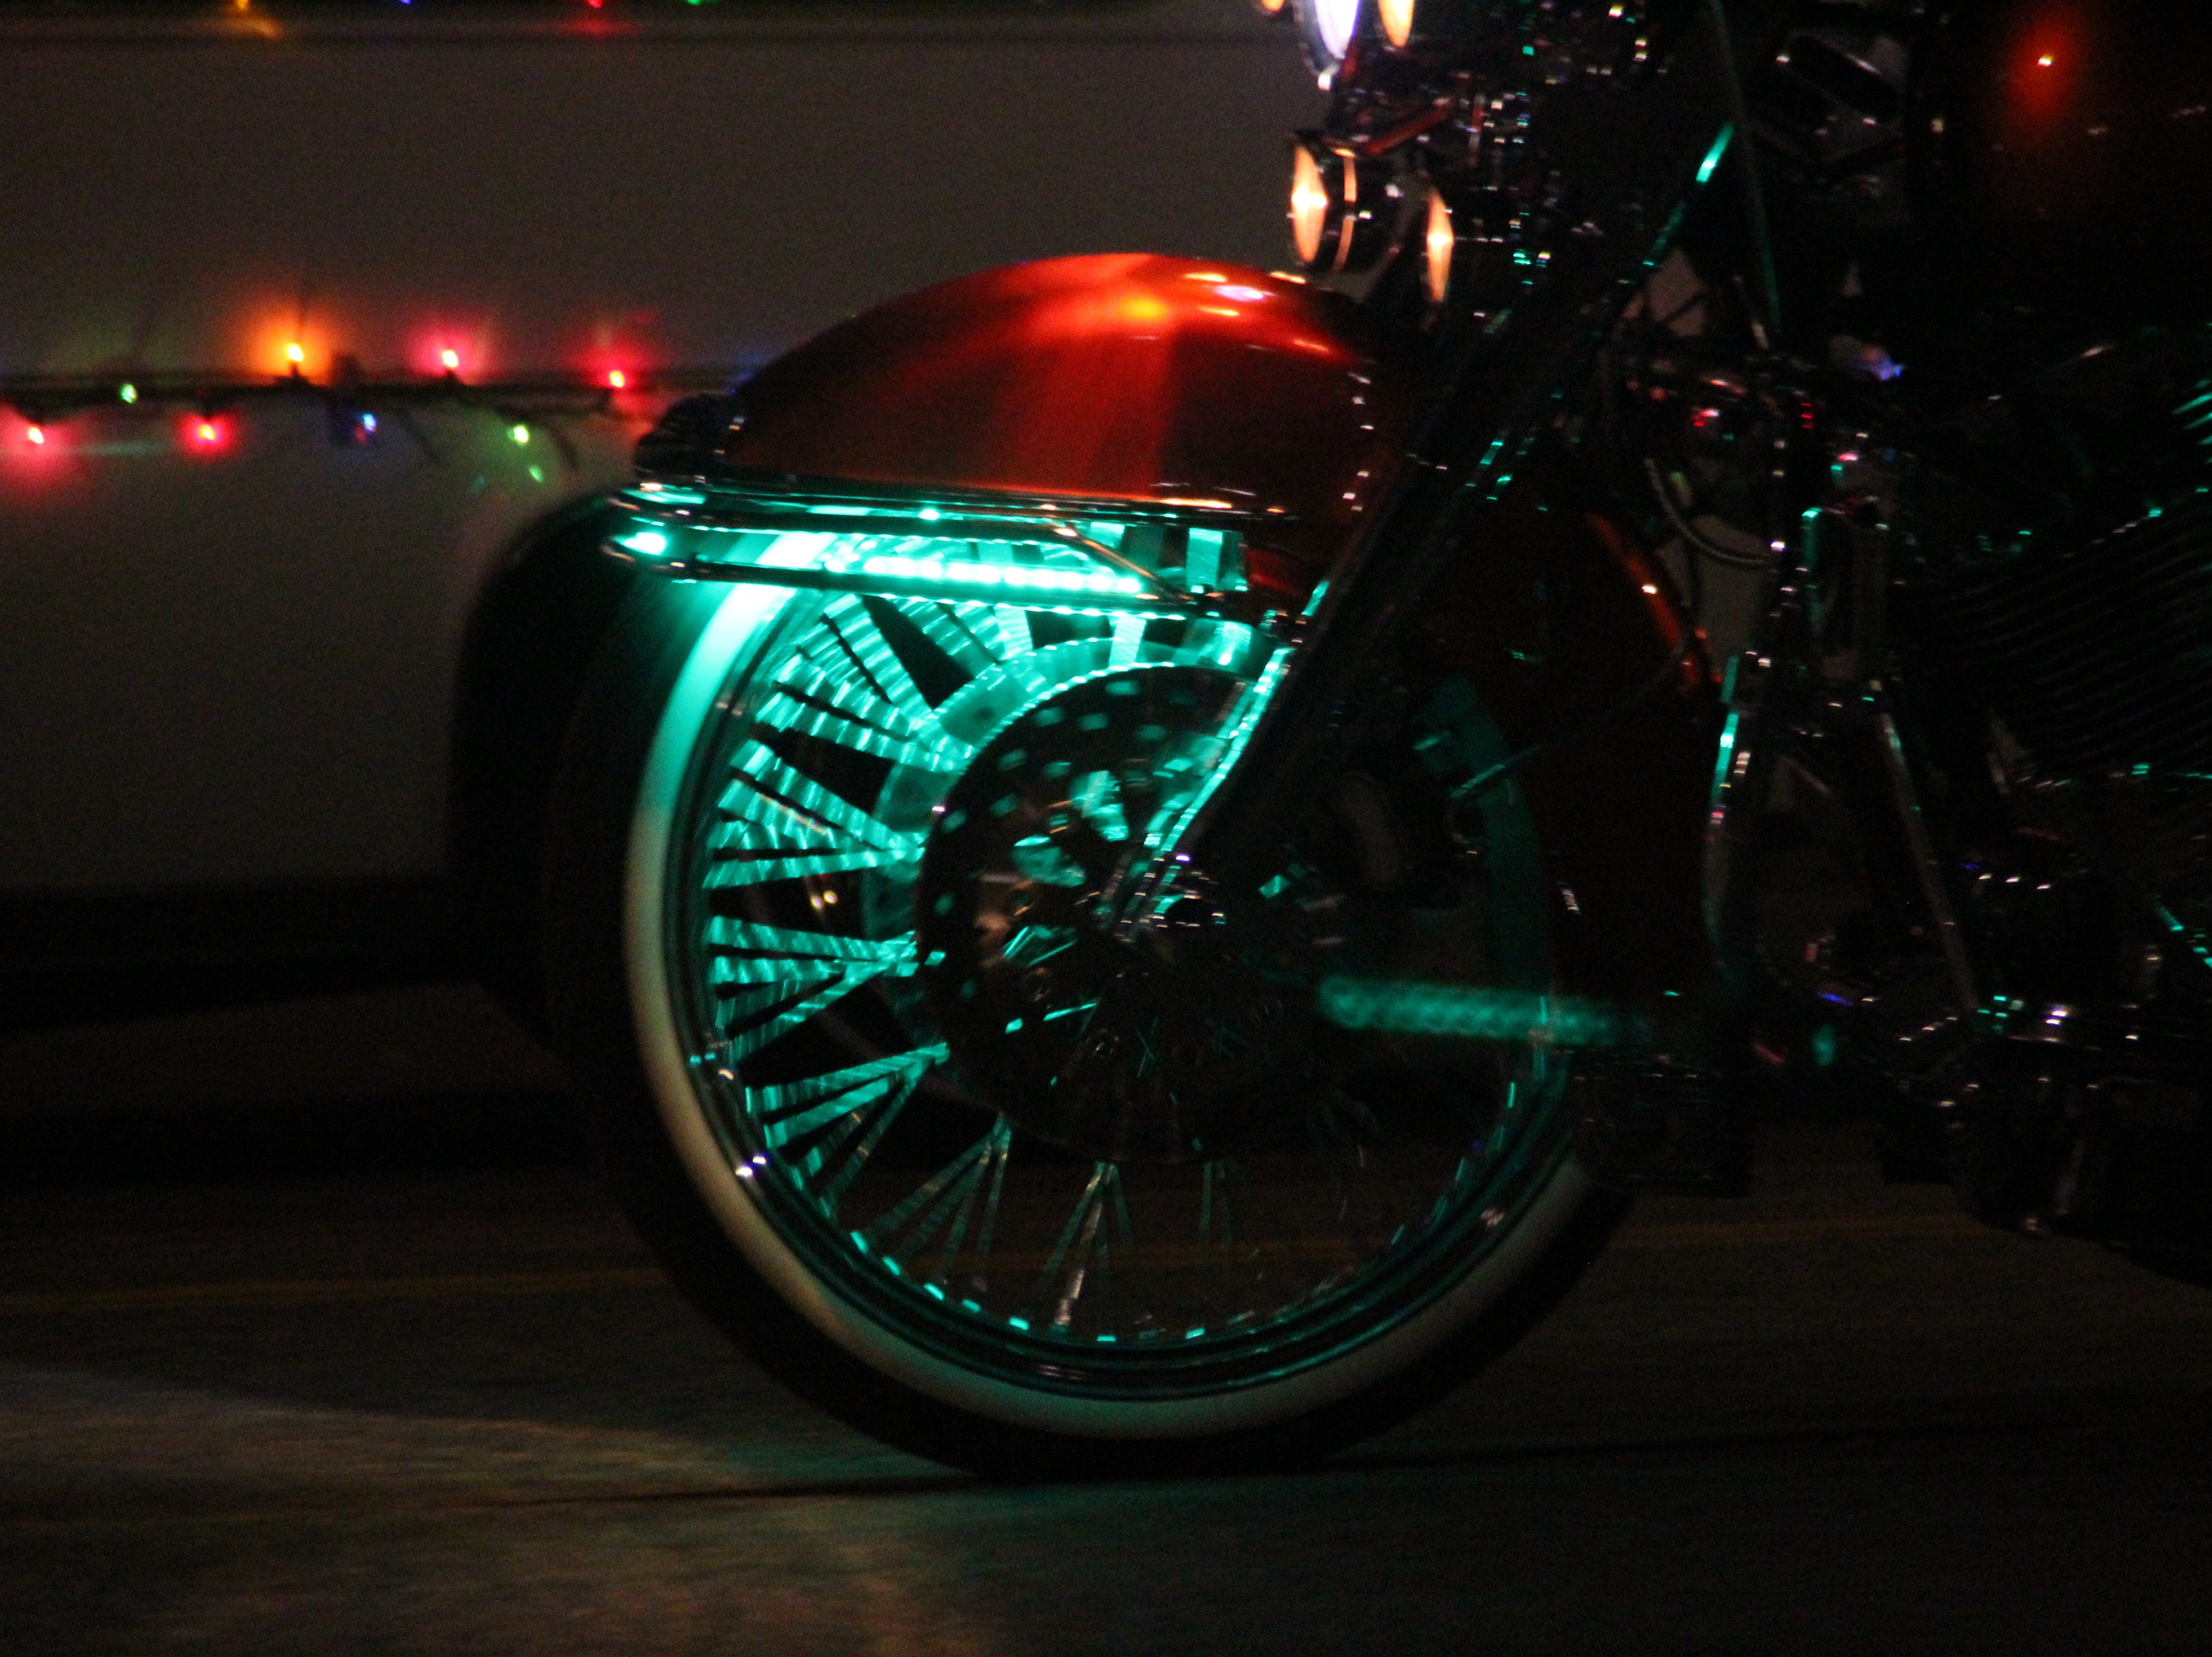 Sunday's Salinas Parade of Lights featured dancers, cars, trucks, horses and motorcycles decorated to start the holiday season.